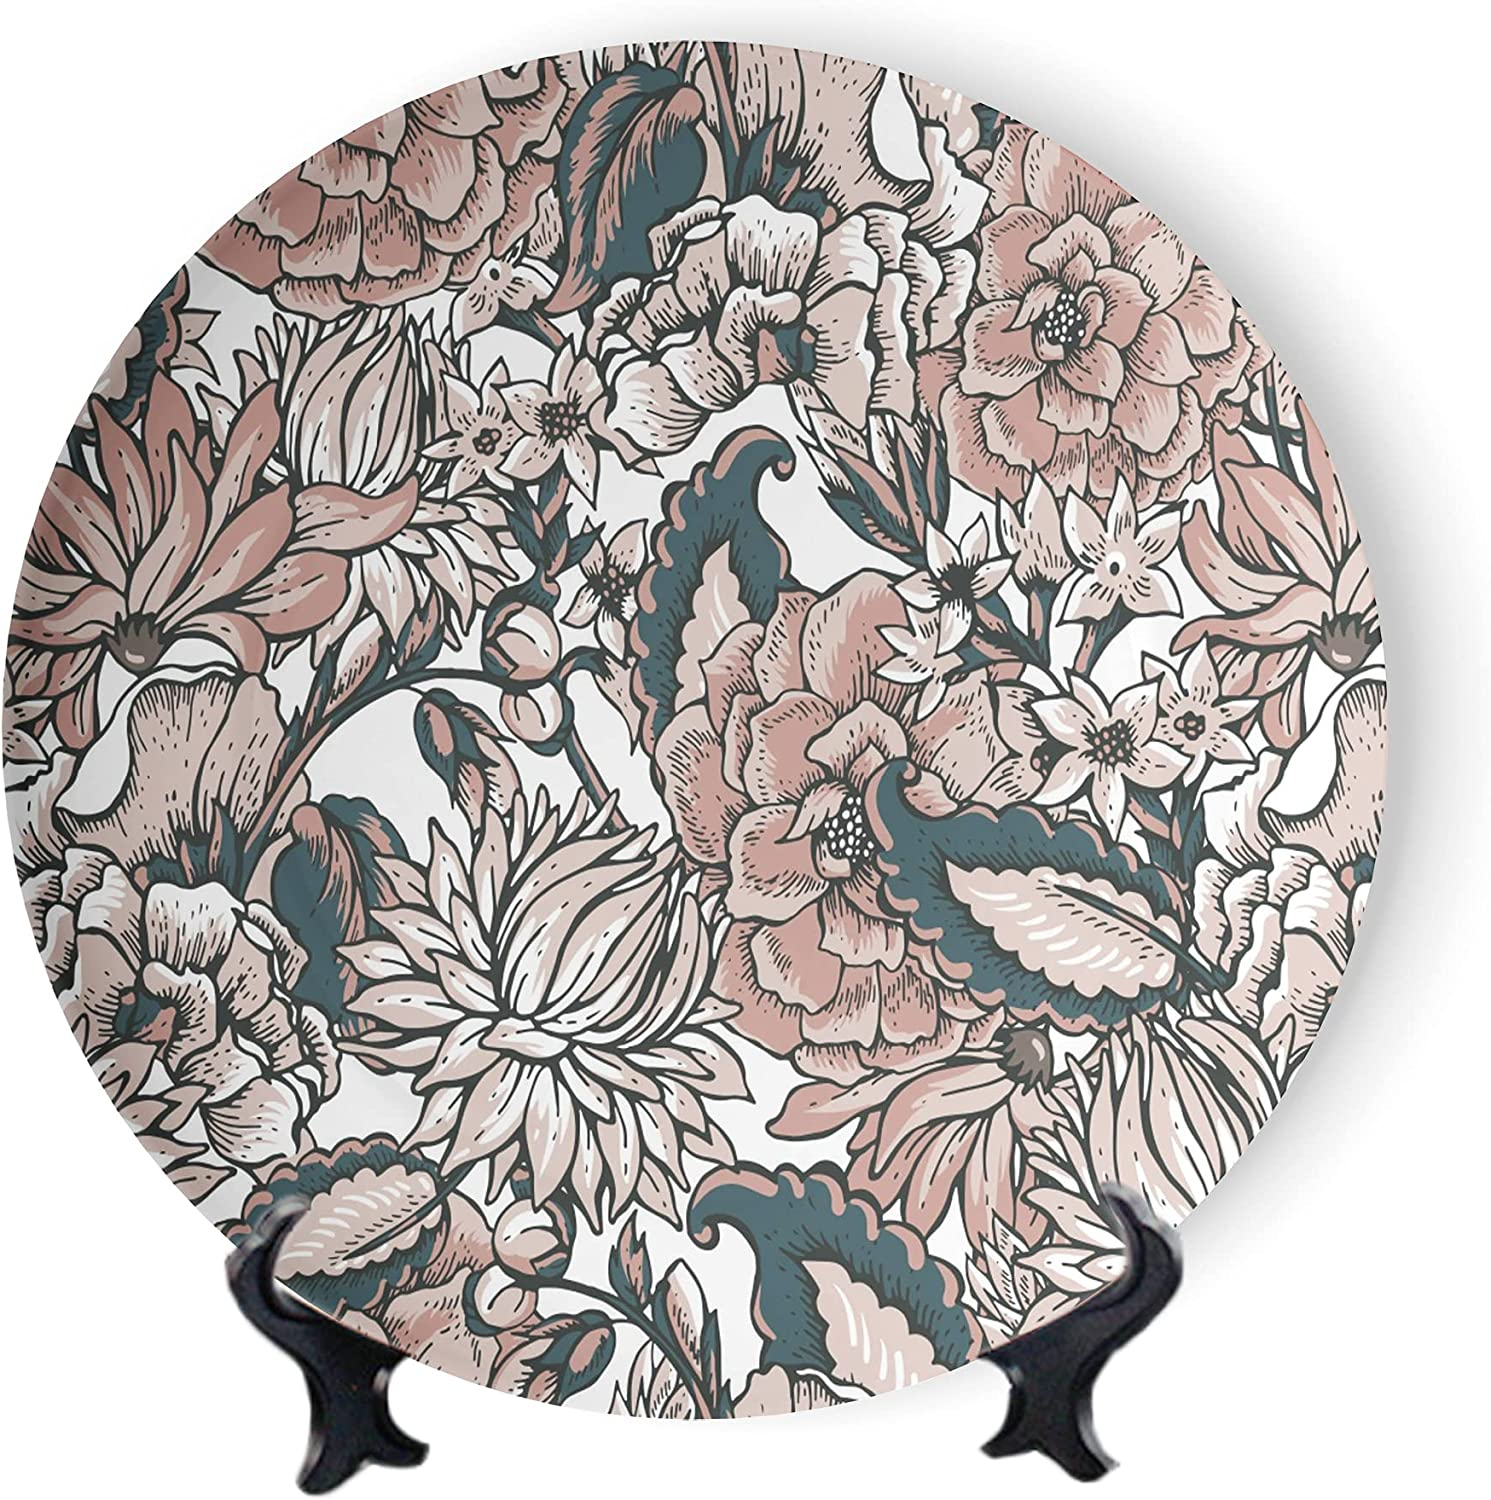 MOOMOO Floral New arrival Plate Ceramic Retro Boho Plat Accessory Decorative Shipping included